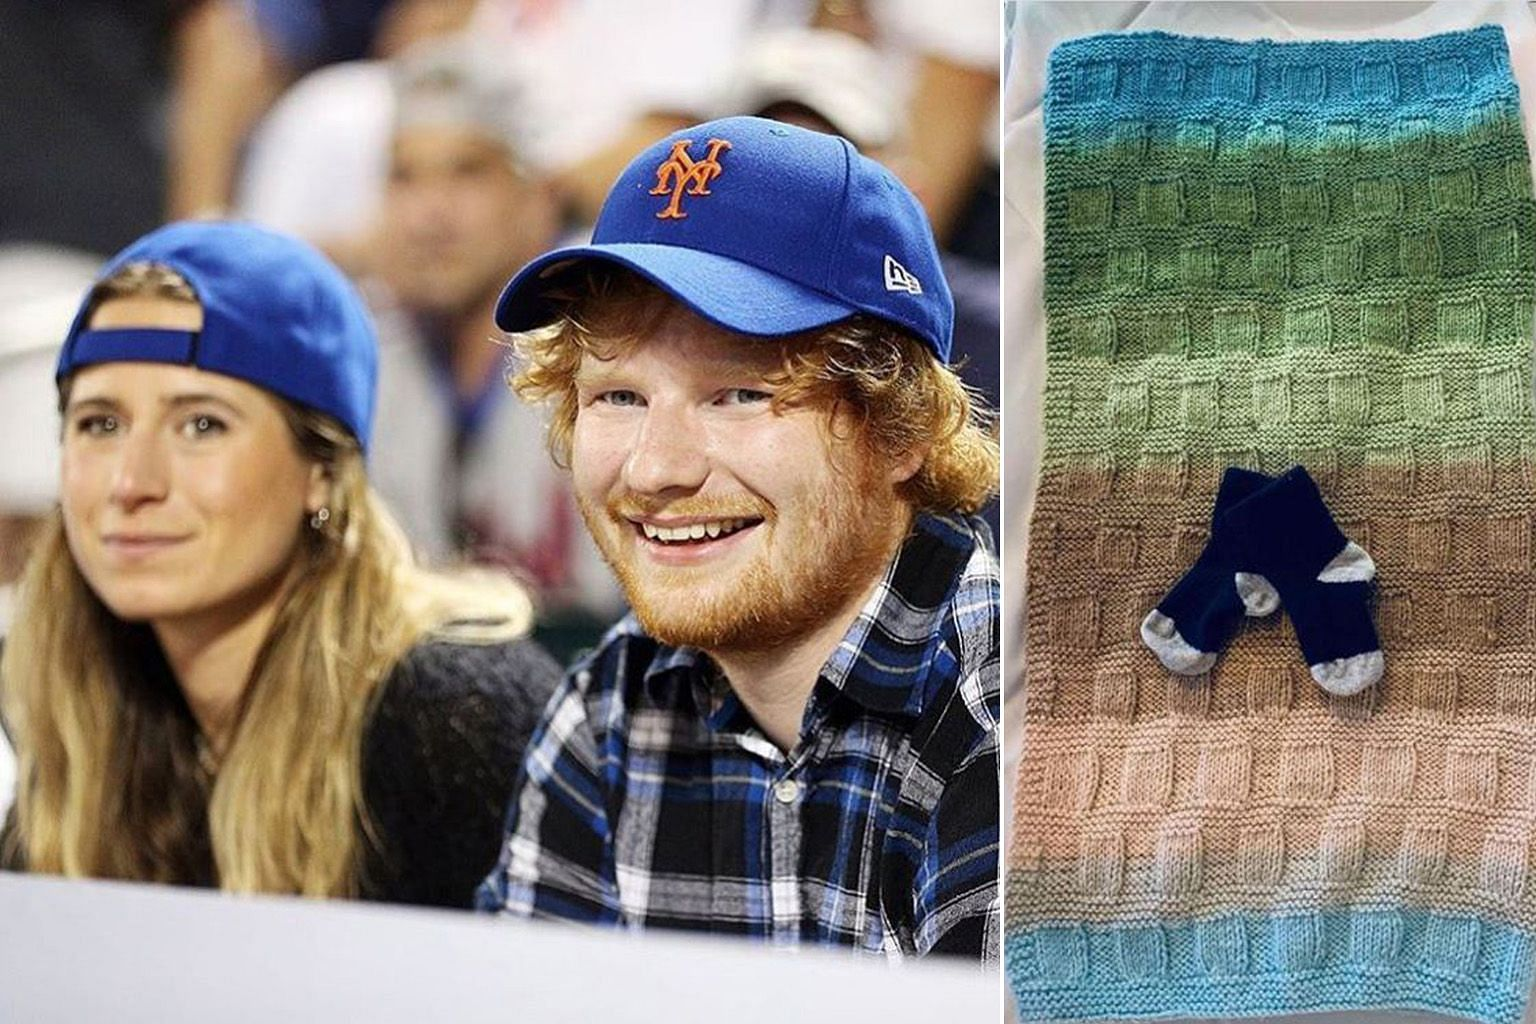 Ed Sheeran (below, with wife Cherry Seaborn) announced the birth of his first child with a photo of a pair of tiny socks on Instagram.